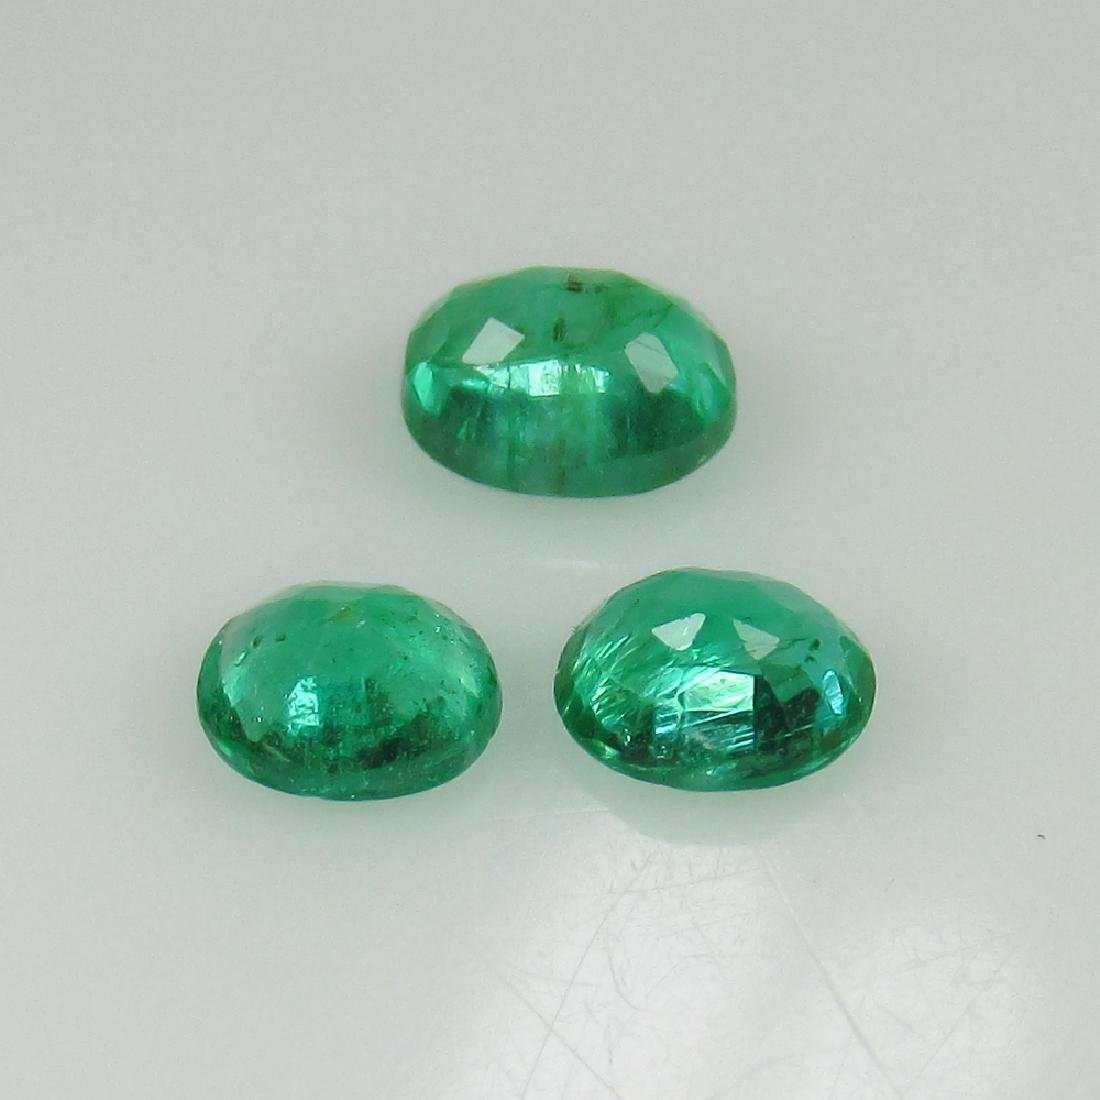 0.68 Ct Genuine Zambian Emerald Matching Oval Set - 2